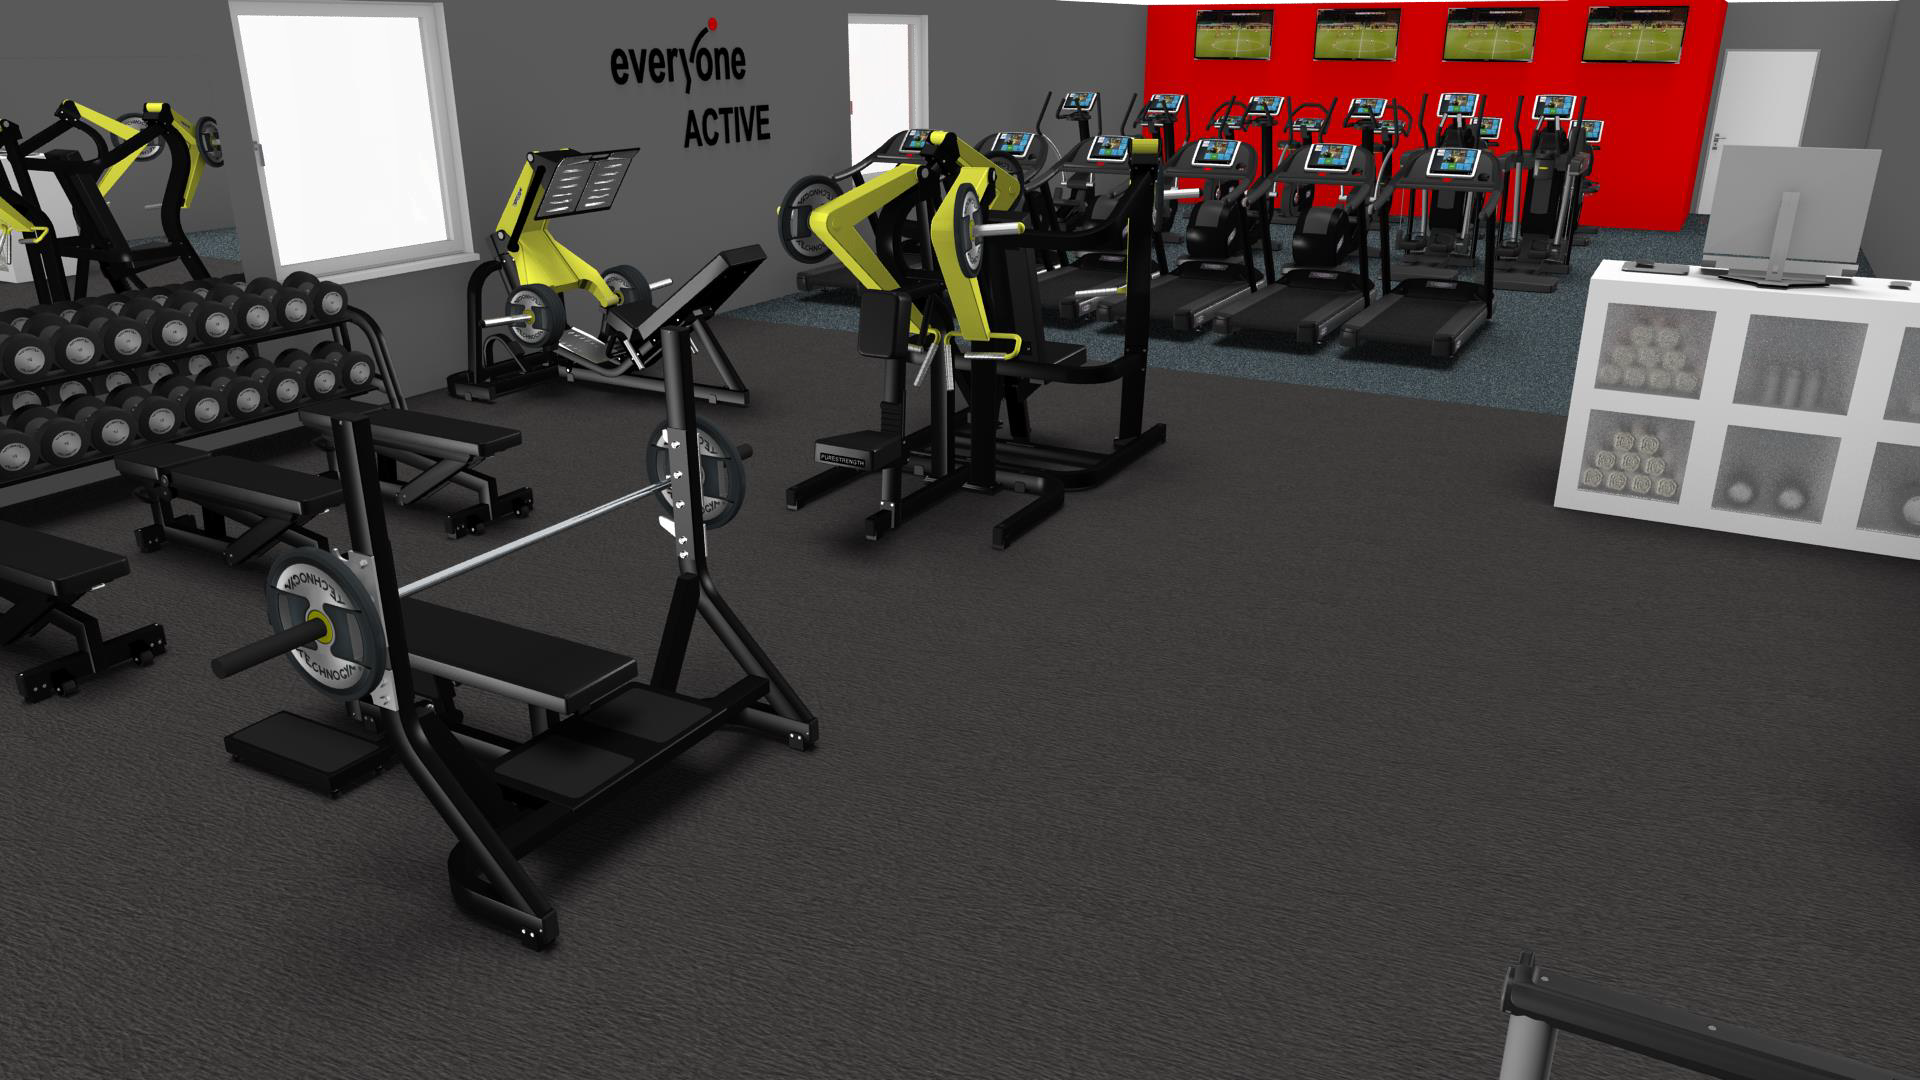 New Weymouth Gym Coming Soon Everyone Active